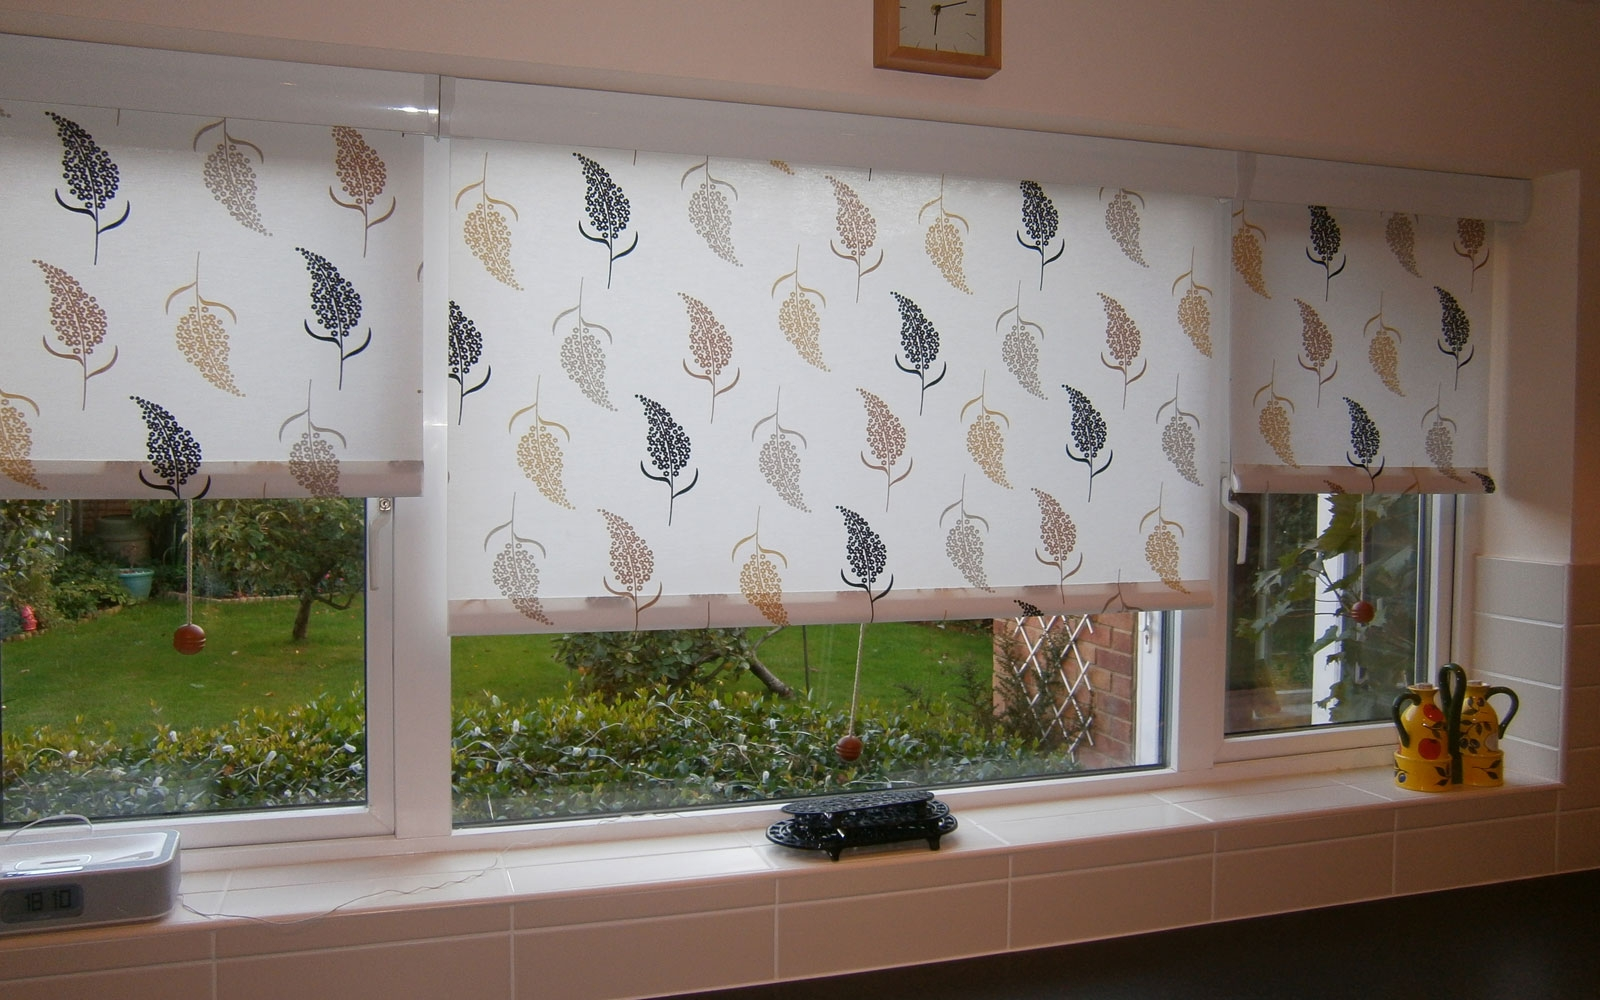 Engaging Kitchen Roller Blinds Pattern Roller Blind Kitchen Regarding Pattern Roller Blinds (Image 5 of 15)